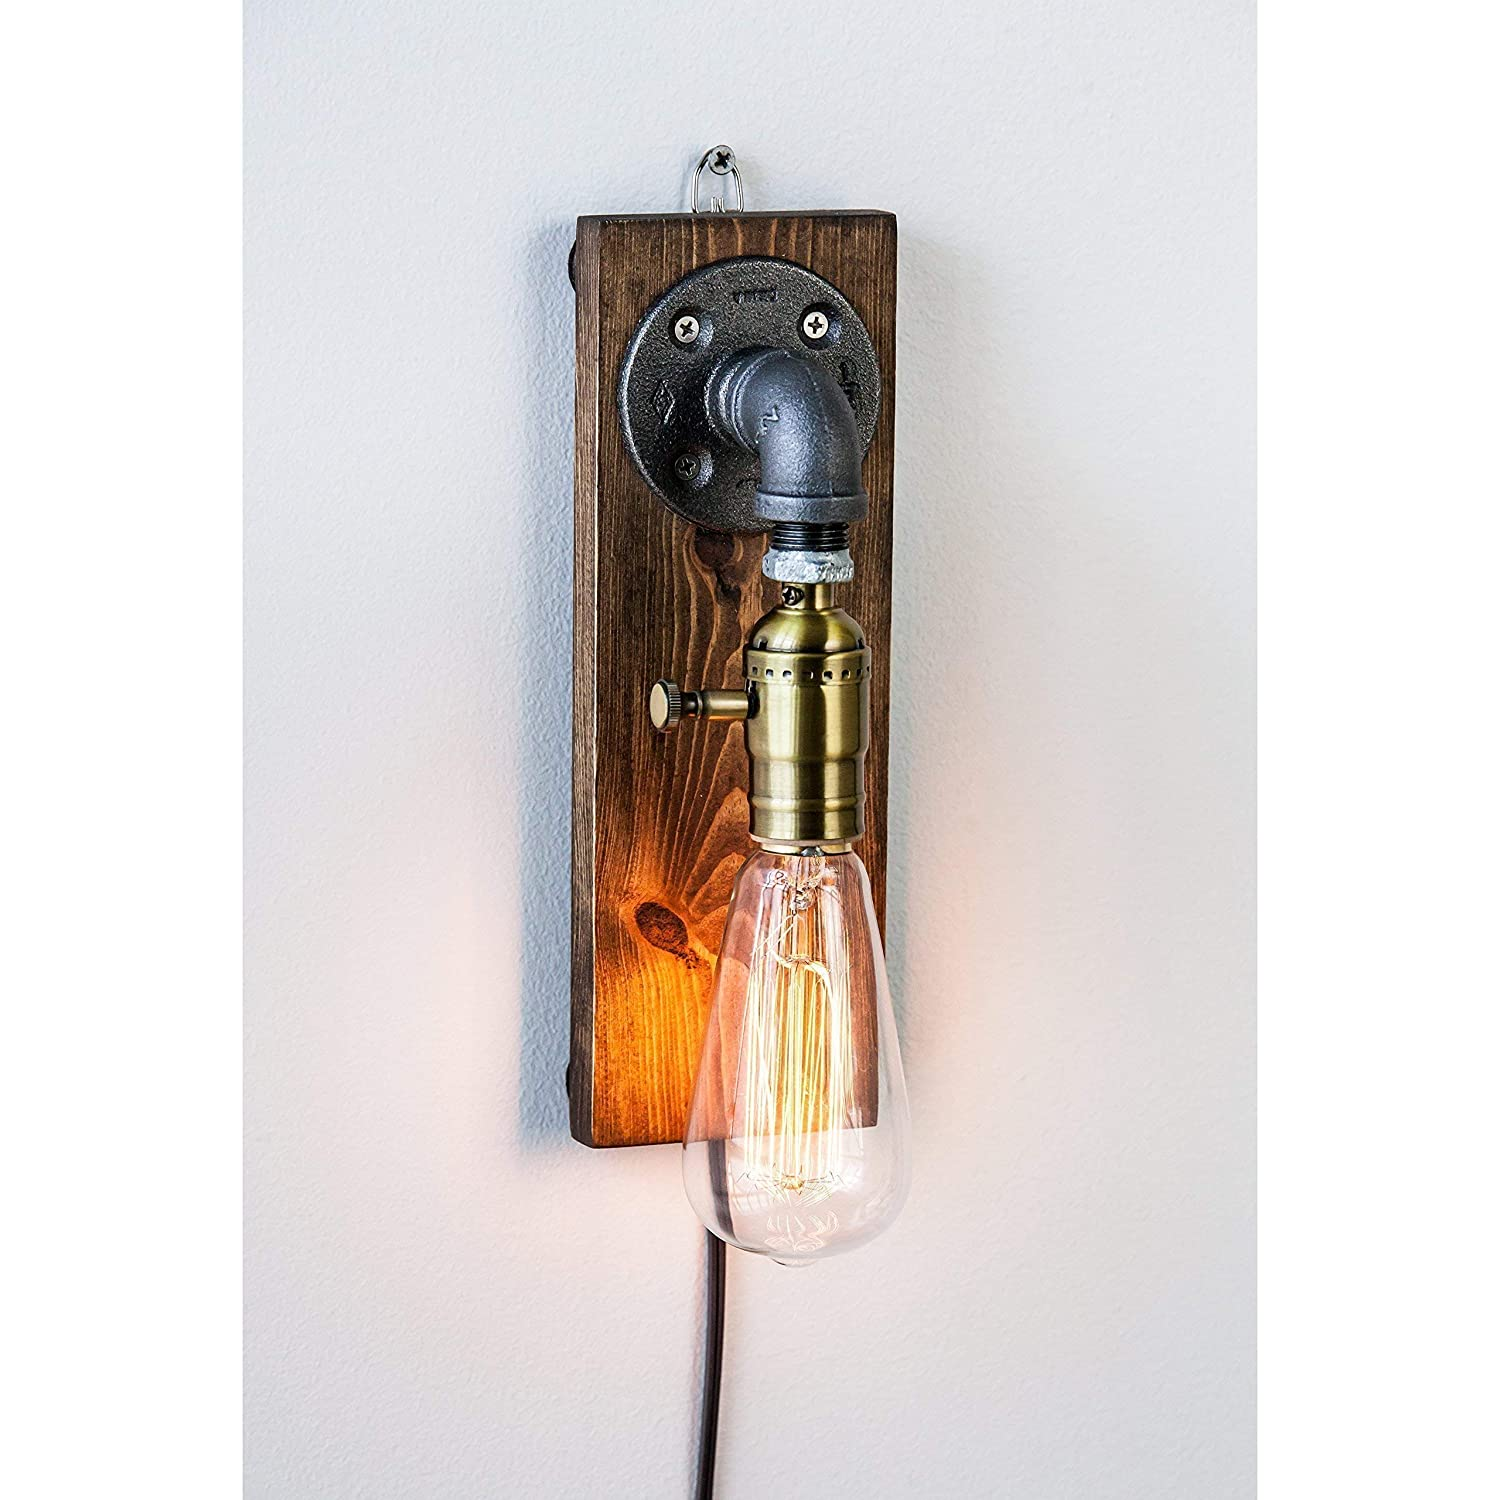 Industrial Steampunk wall sconce pipe lamp with classic Edison bulb and weathered wood base